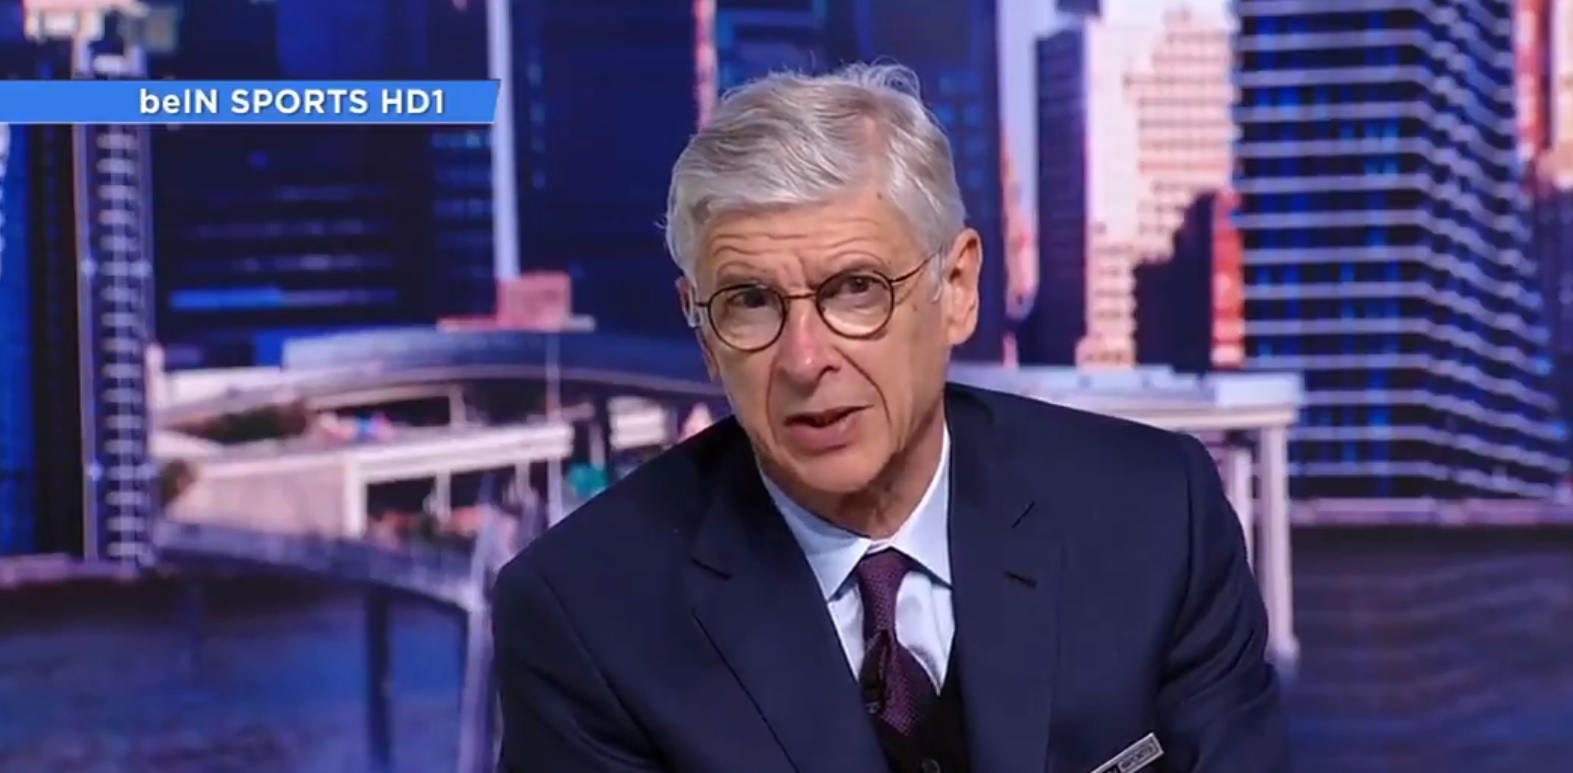 Arsene Wenger lauds 'convincing' Liverpool star ahead of Euro 2020